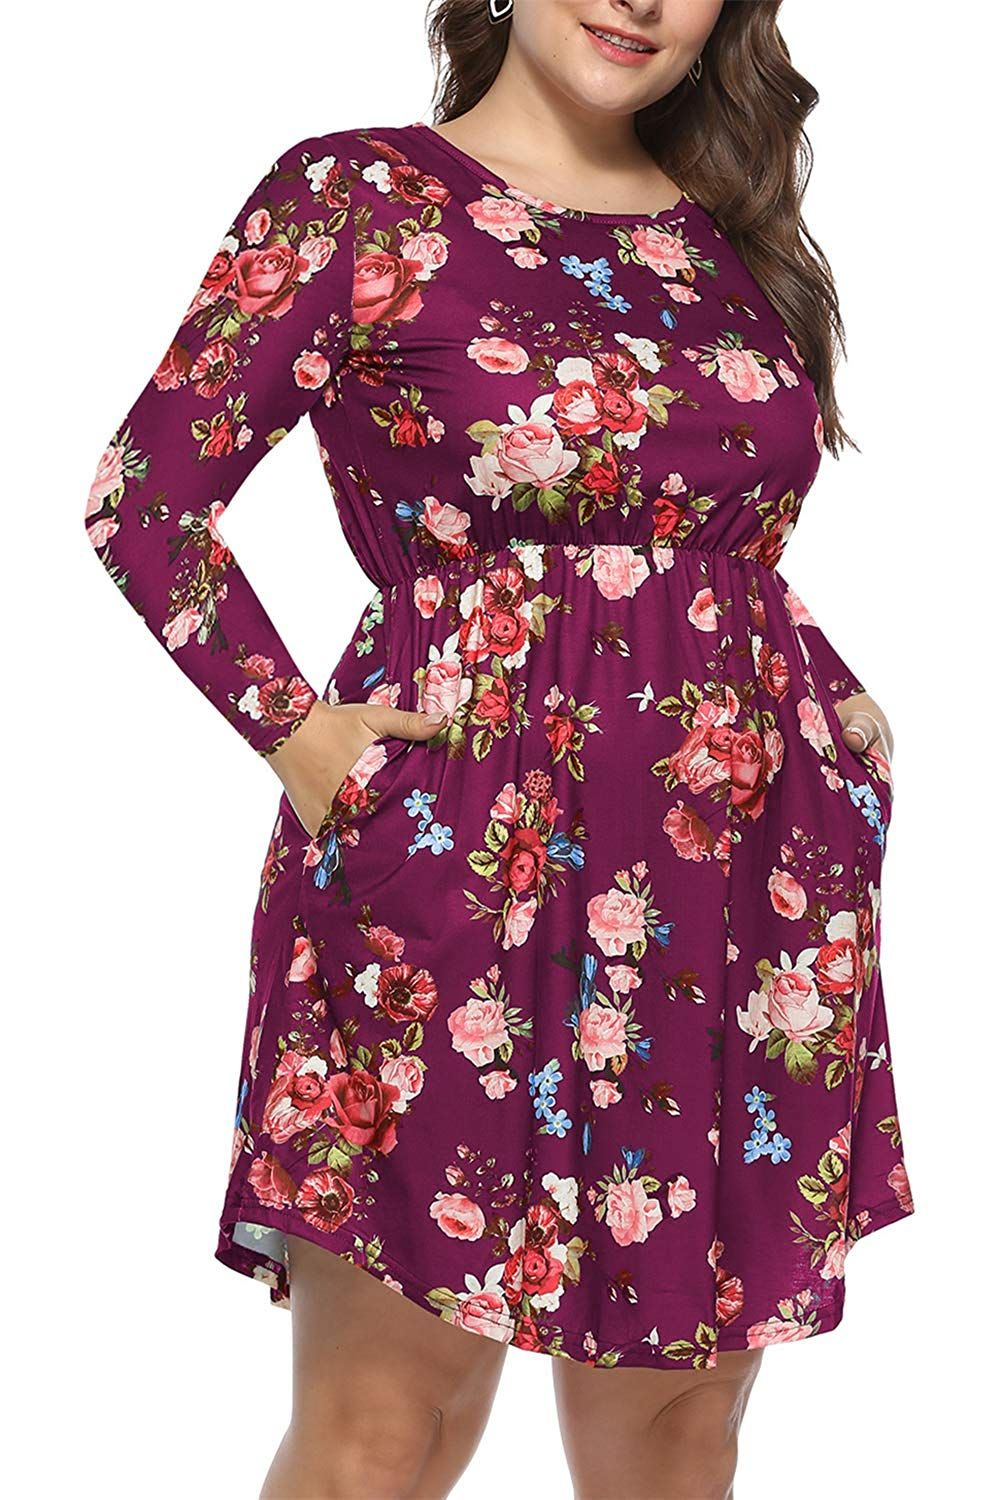 64d256eaeb3e8 VISLILY Women's Plus Size Floral Print Pleated Long Sleeve Casual ...